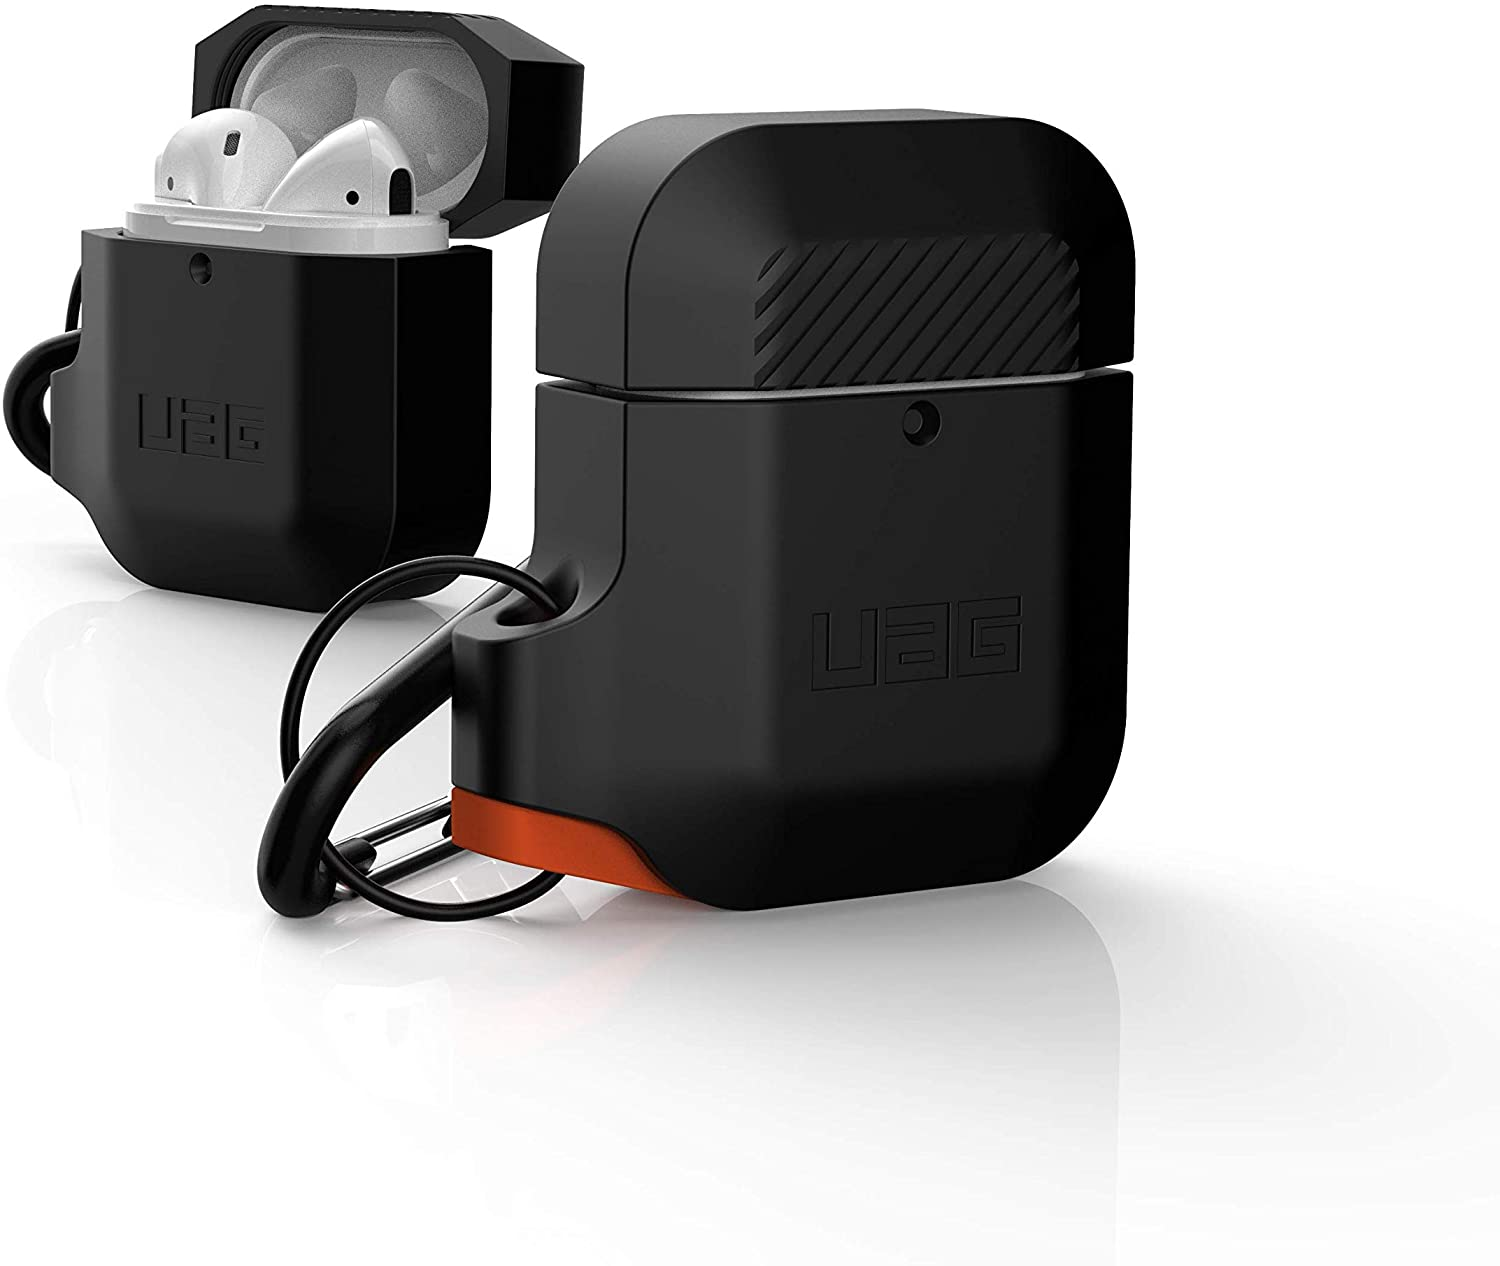 Original UAG Silicone AirPods (1st Gen & 2nd Gen) Protective Rugged Water Resistant Soft-Touch with Detachable Carabiner